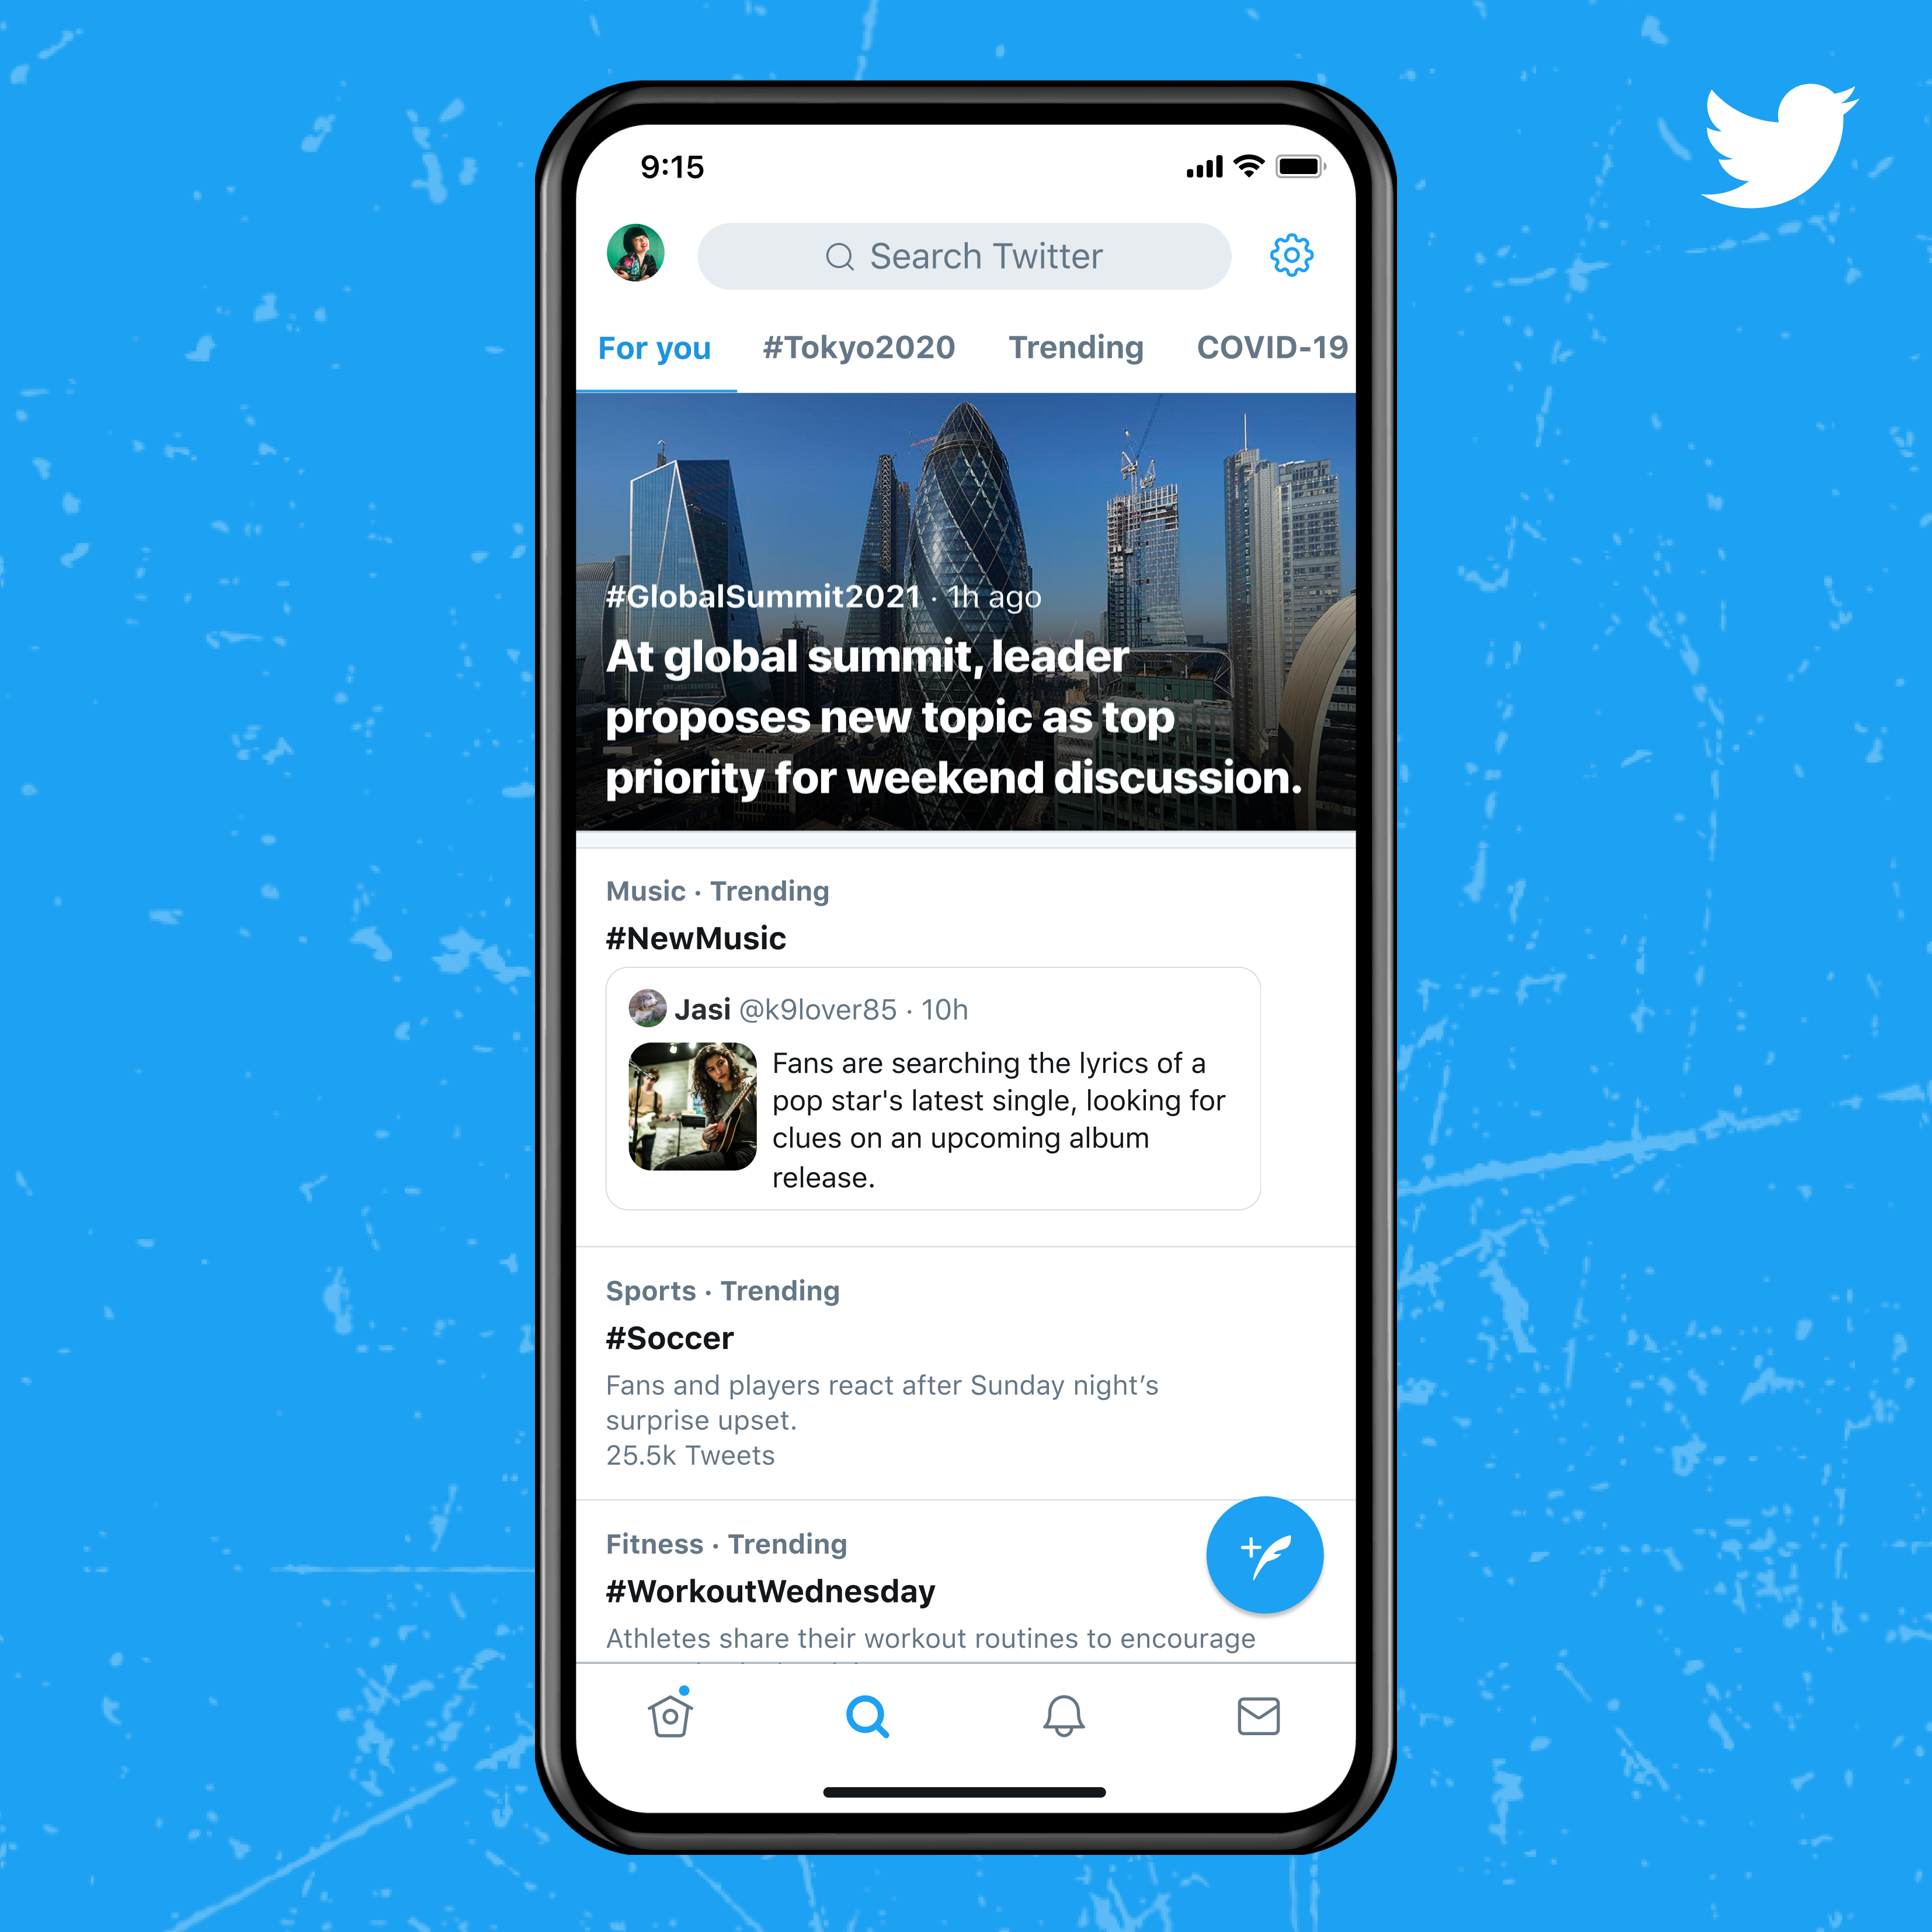 Twitter Adds More Context to Trending Topics